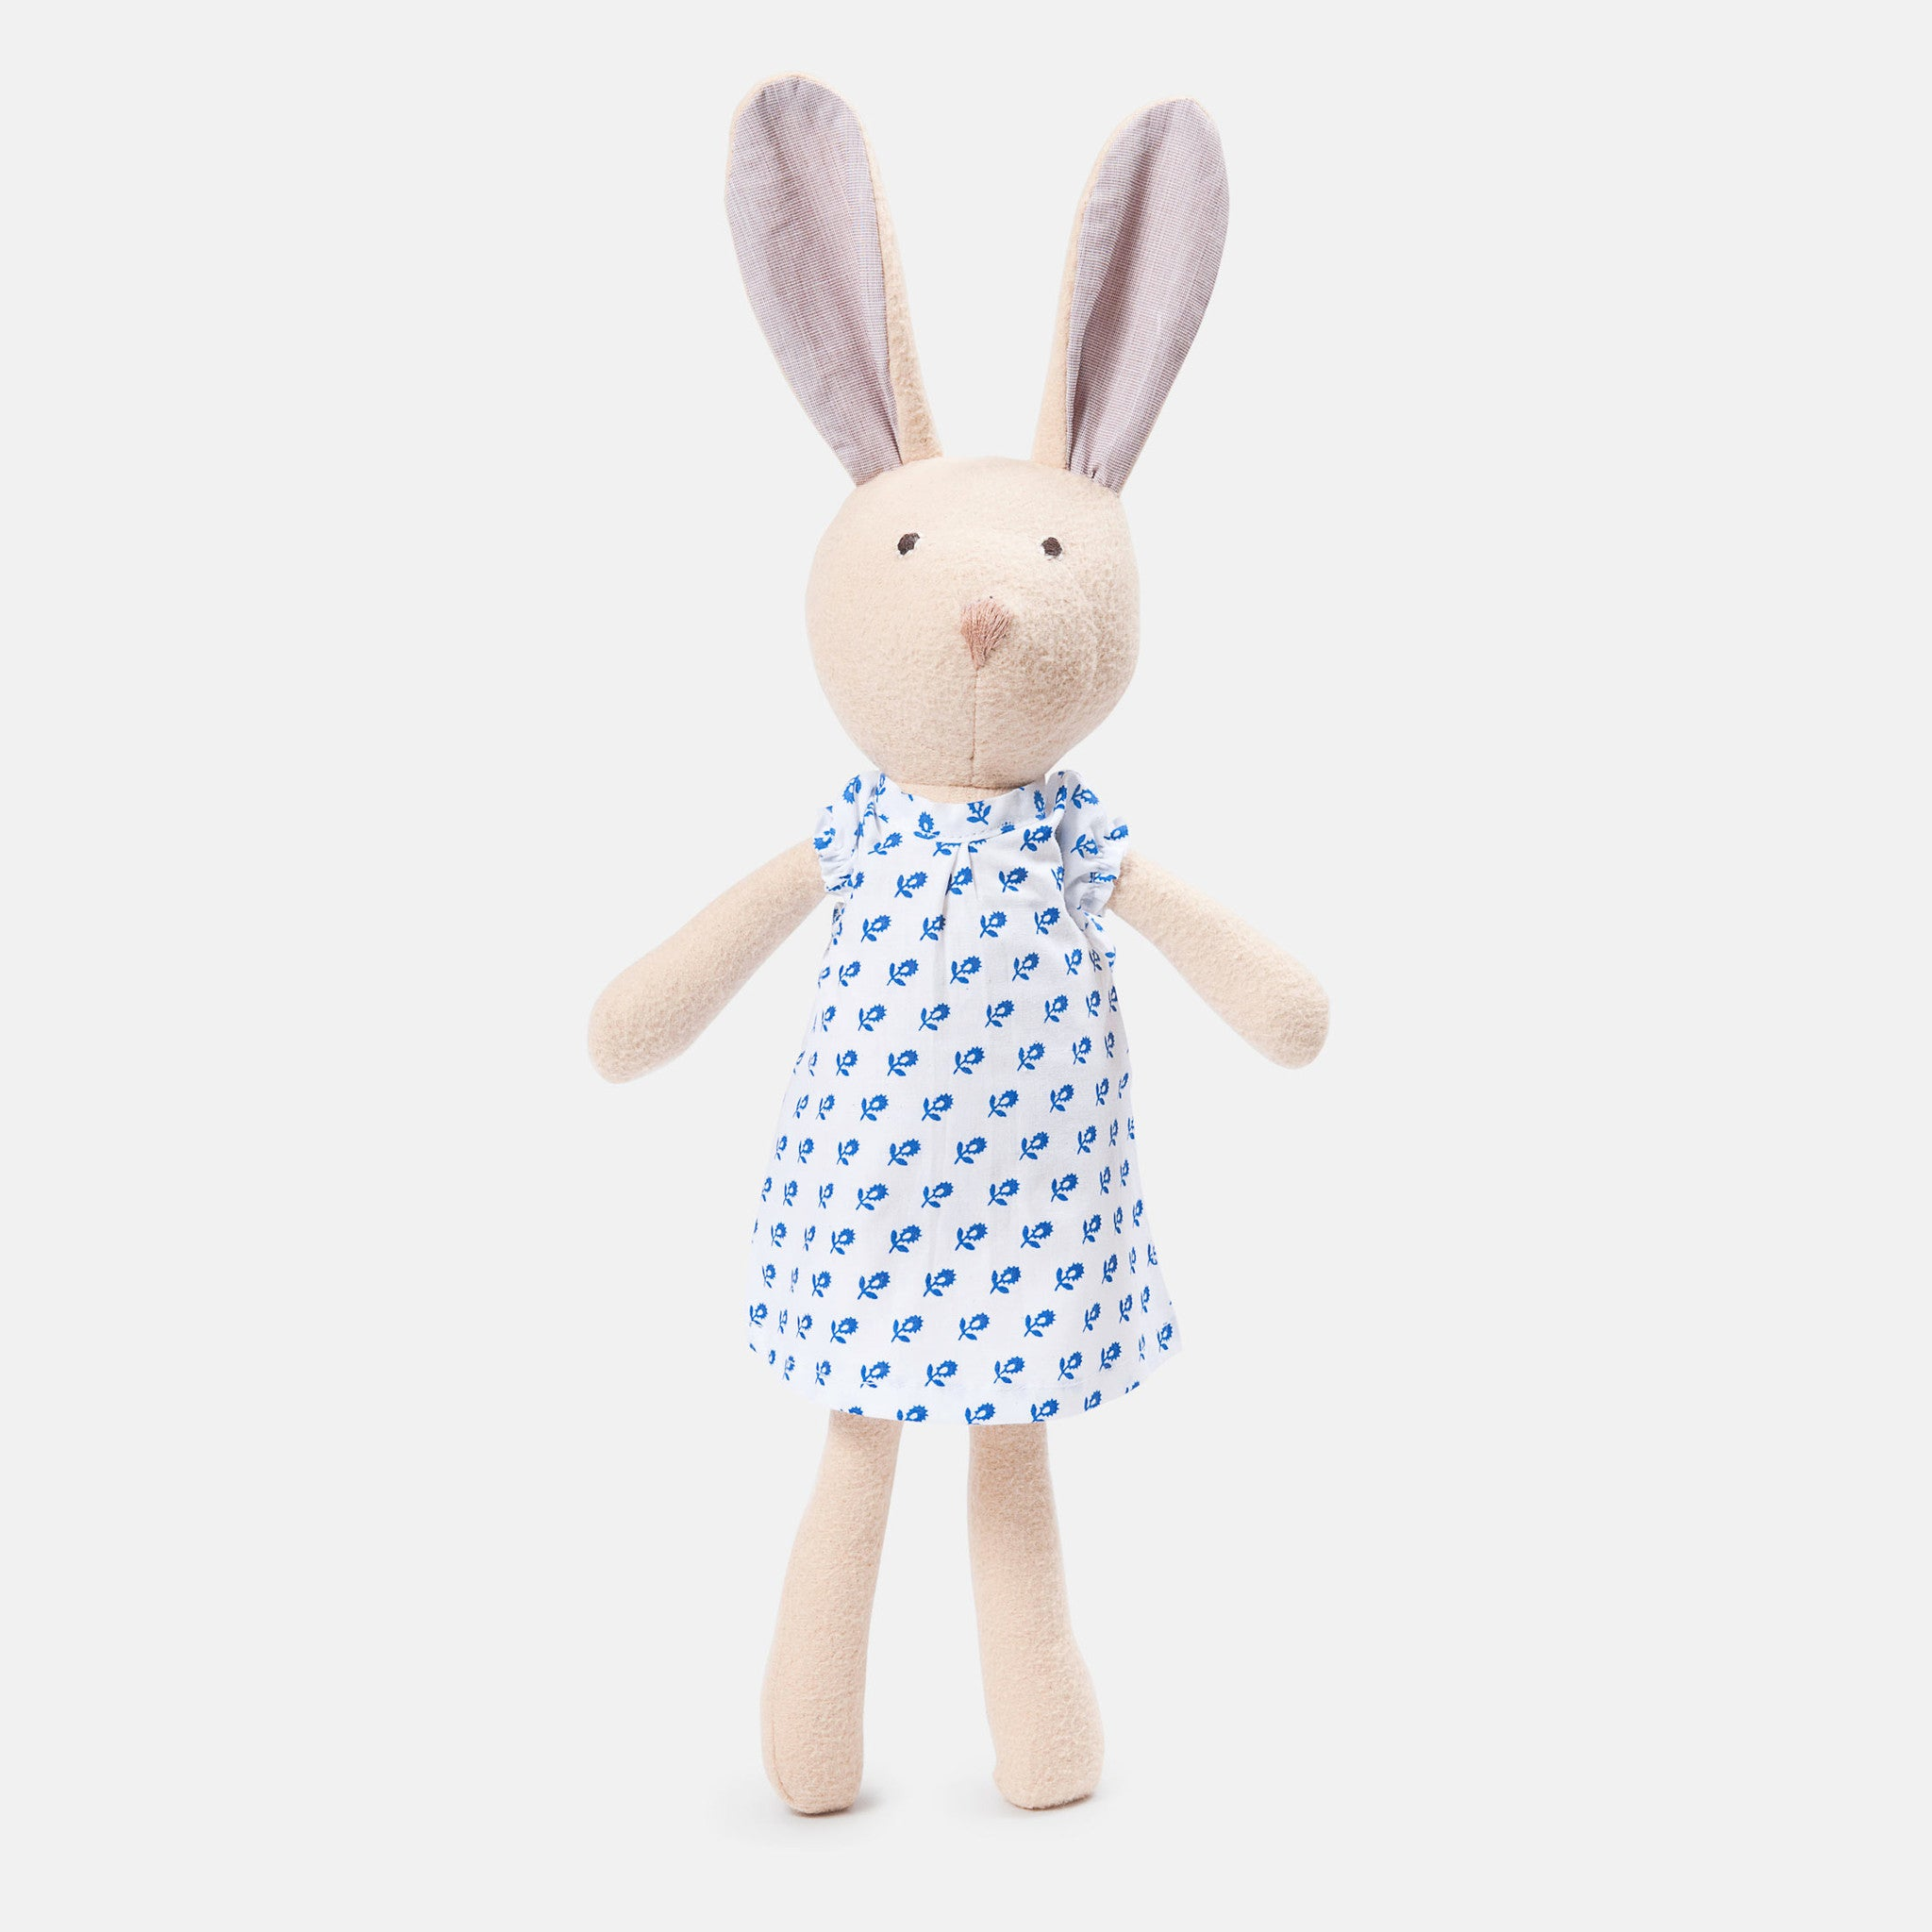 The beige soft toy, Juliette Rabbit - a sustainable organic cotton cuddly toy rabbit by Hazel Village